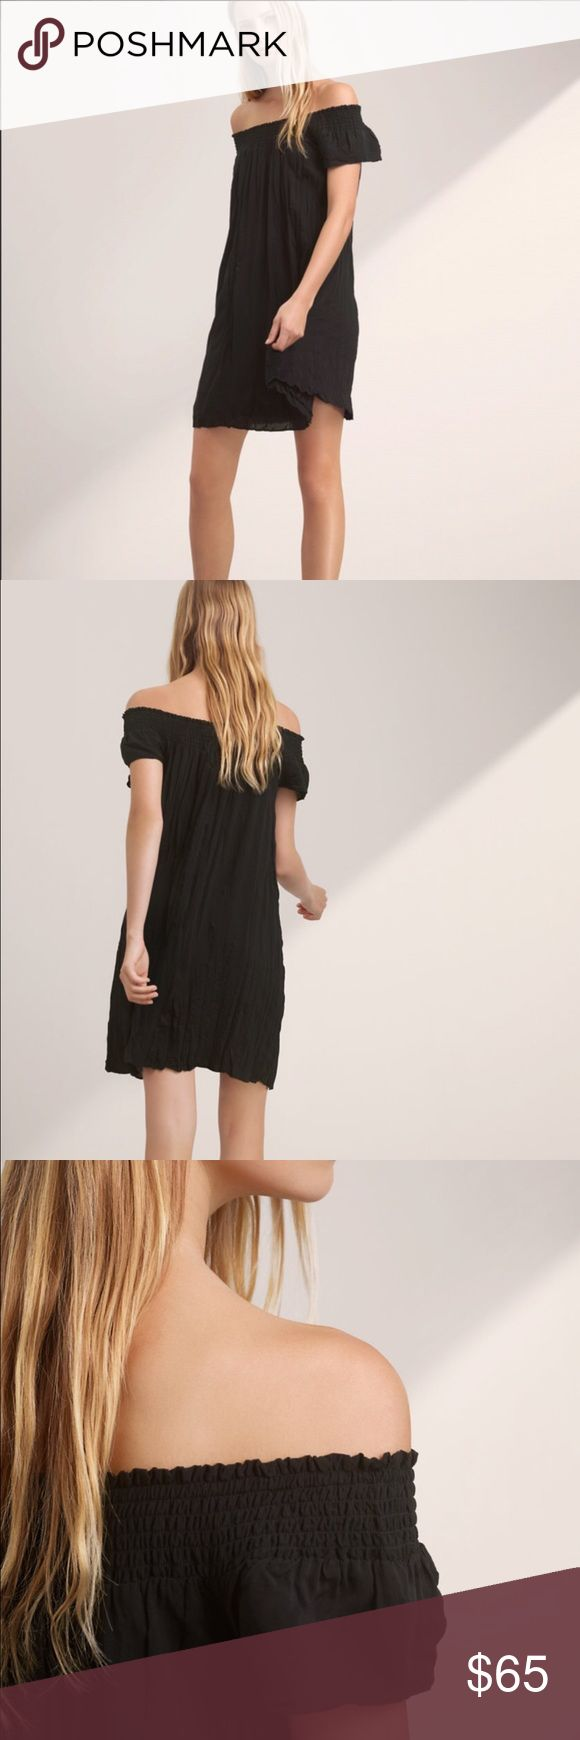 """NWOT Aritzia Talula Horacio Dress - Black SOLD OUT - Made with lightweight, drapey twill, this piece has smocking to keep the off-the-shoulder neckline in place. The trapeze silhouette is feminine and seasonal.   100% Viscose Imported Dry Clean  Size // Fit Fits true to size. Take your normal size. Model is 5'9.5""""/177cm wearing a size XS Aritzia Dresses Mini"""